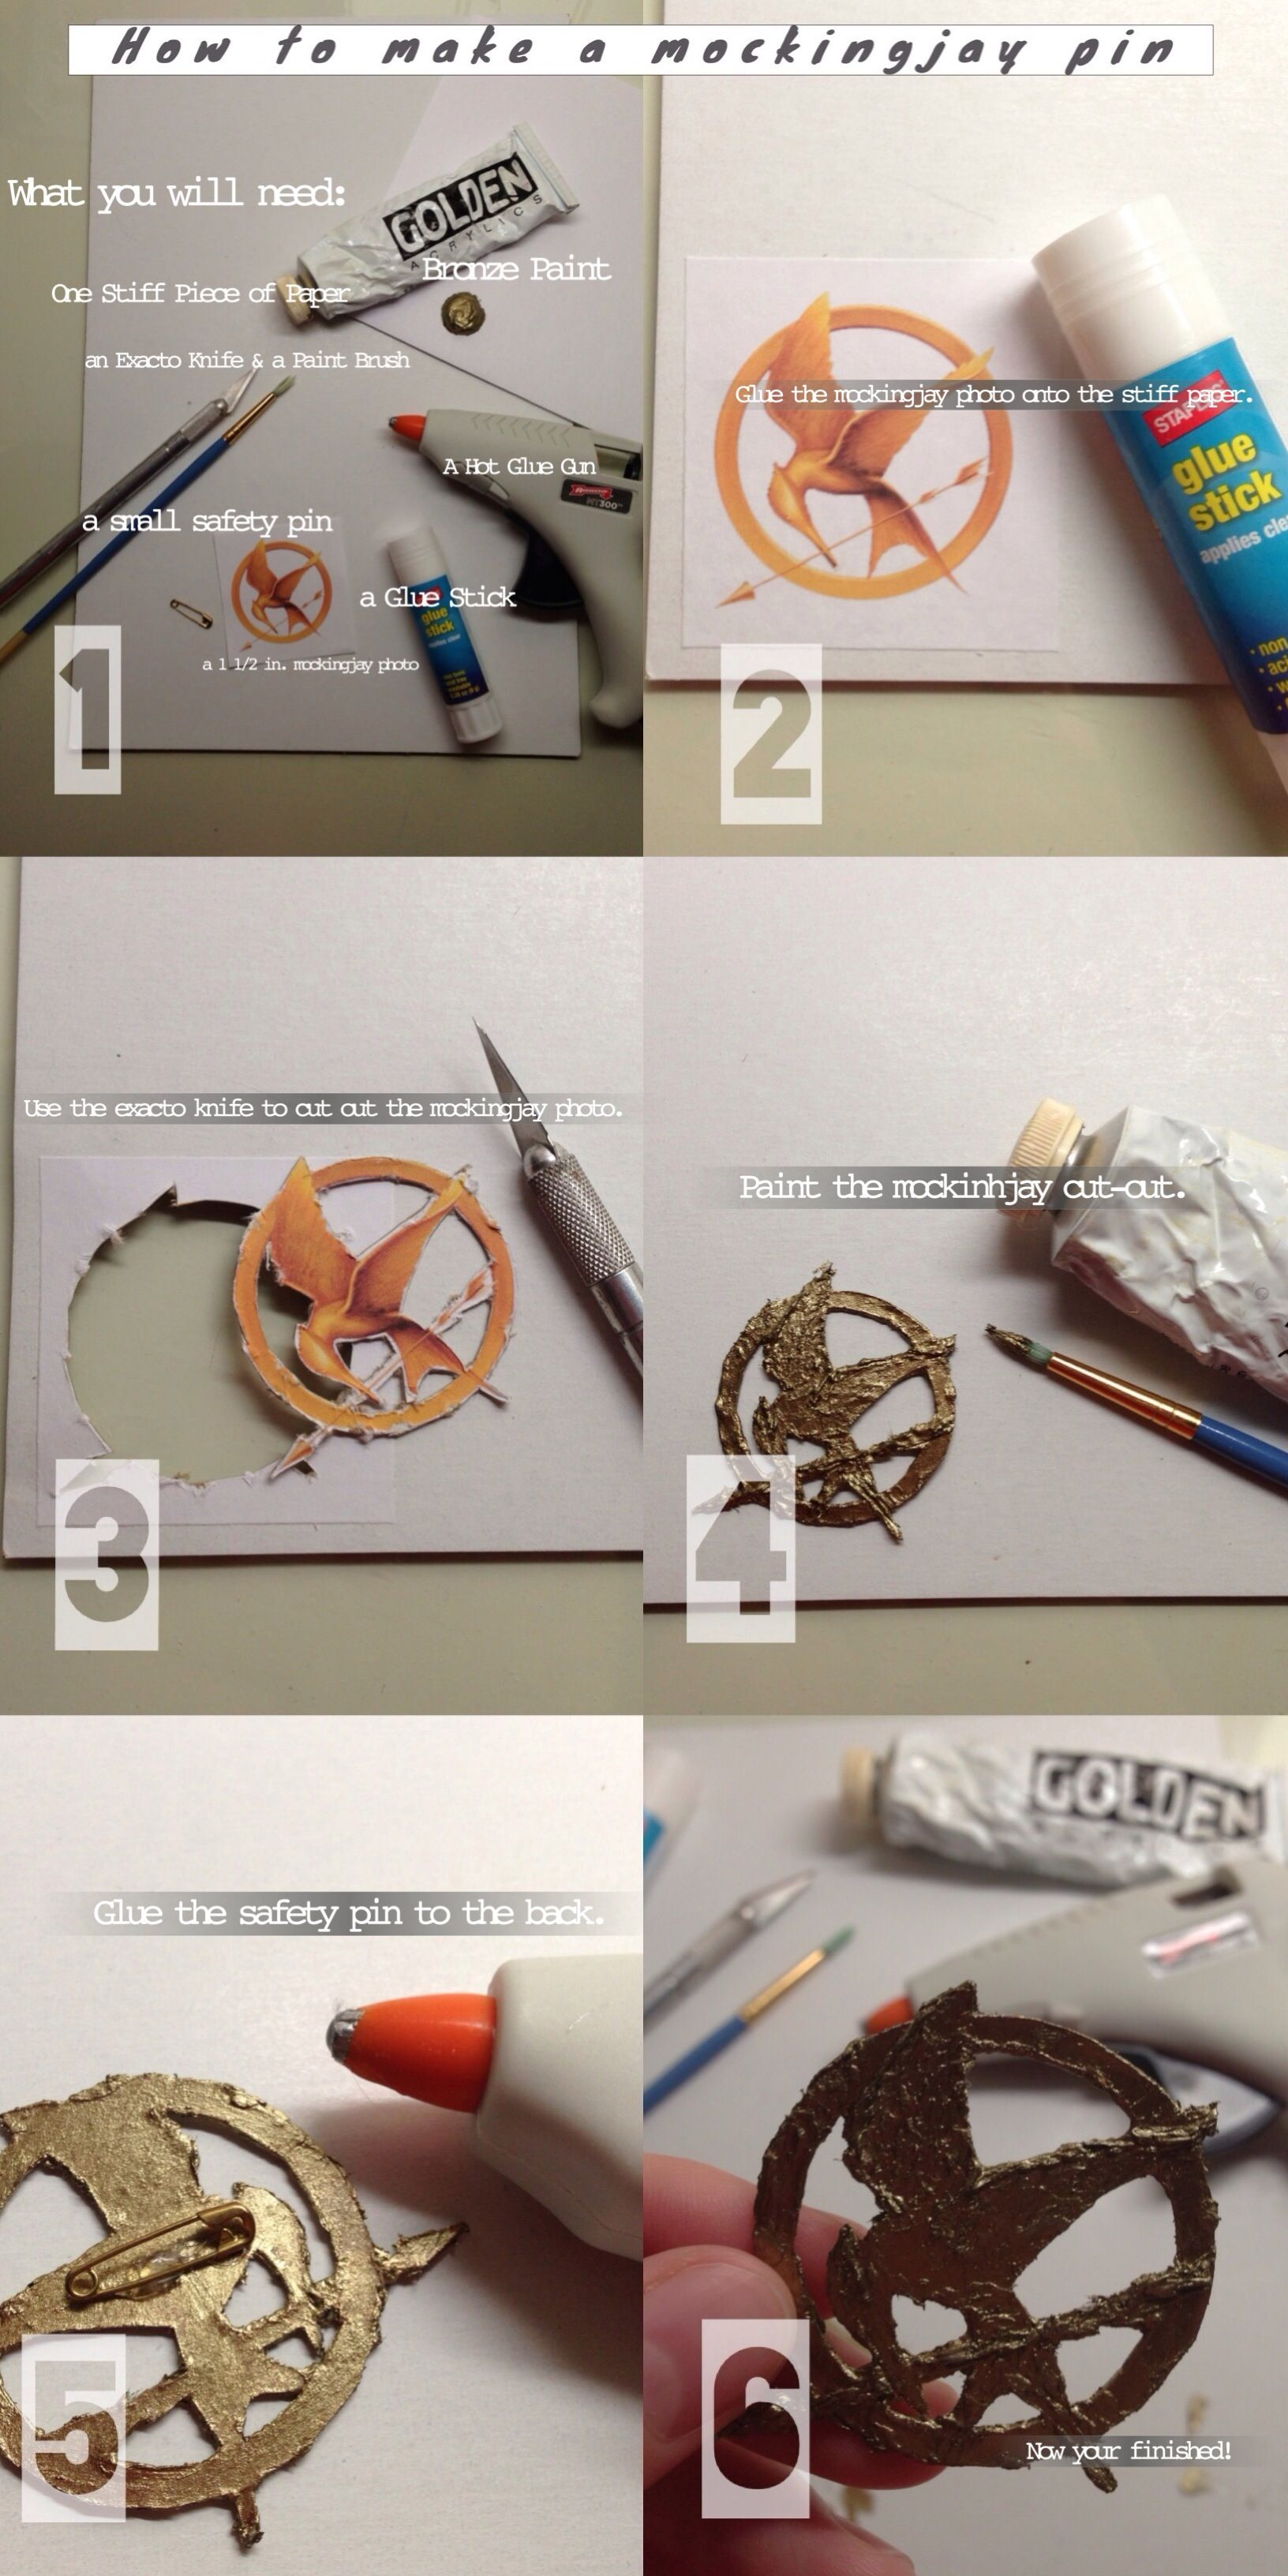 How to Make a Mockingjay Pin recommendations